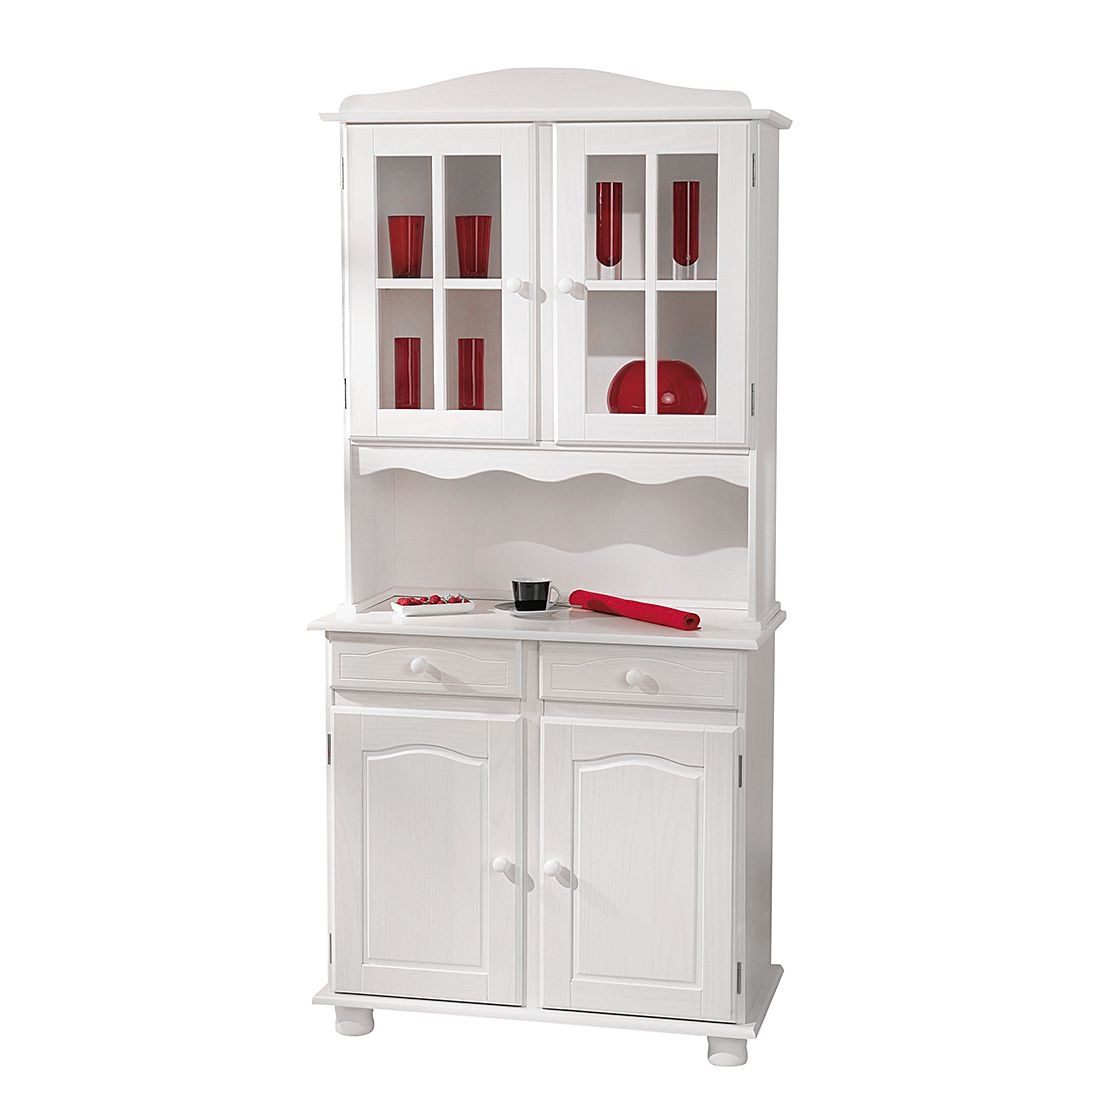 Küche Highboard Kaufen Home24 Buffet Asta I